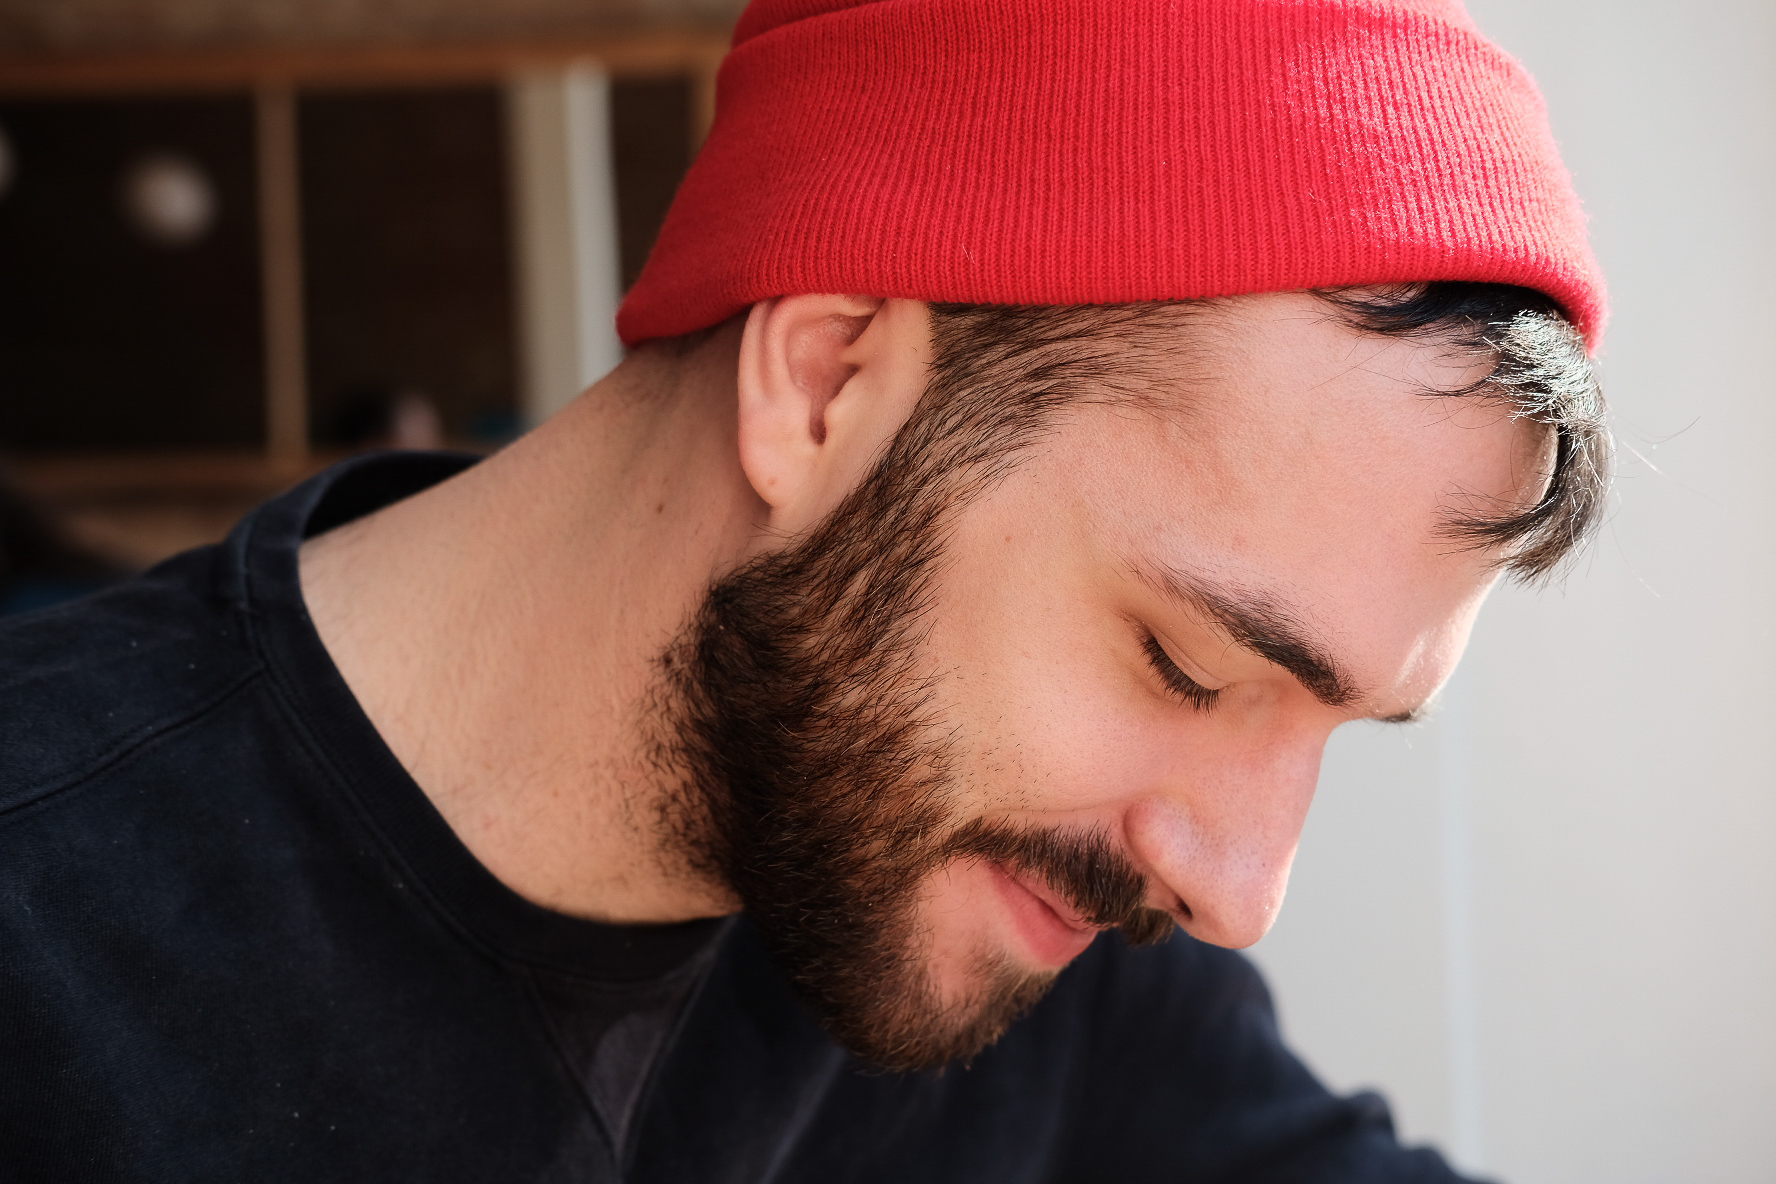 a photograph of Alex Evans. He has a beard and is wearing a red knit hat.